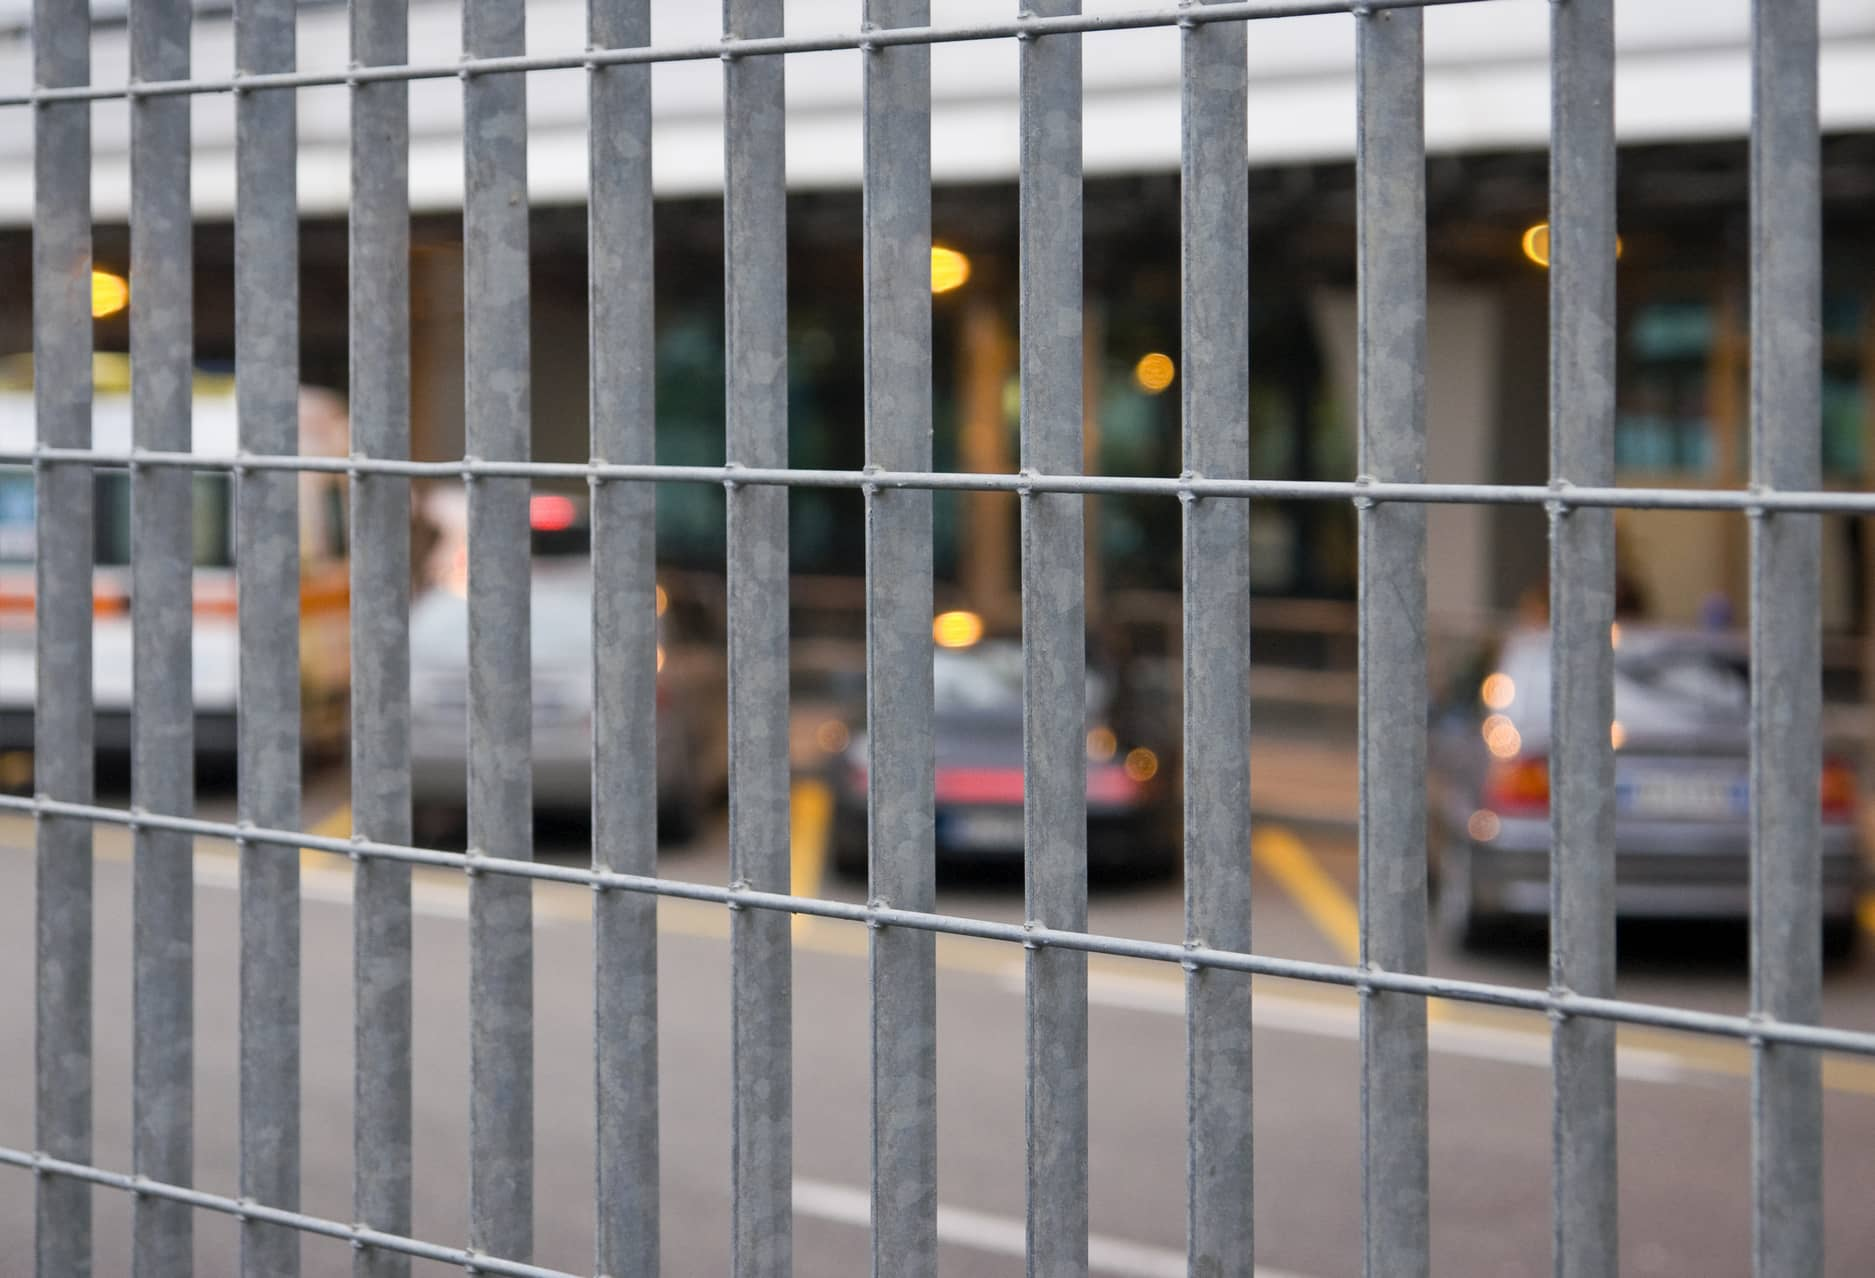 This picture shows a metal fence surrounding a commercial parking lot area.